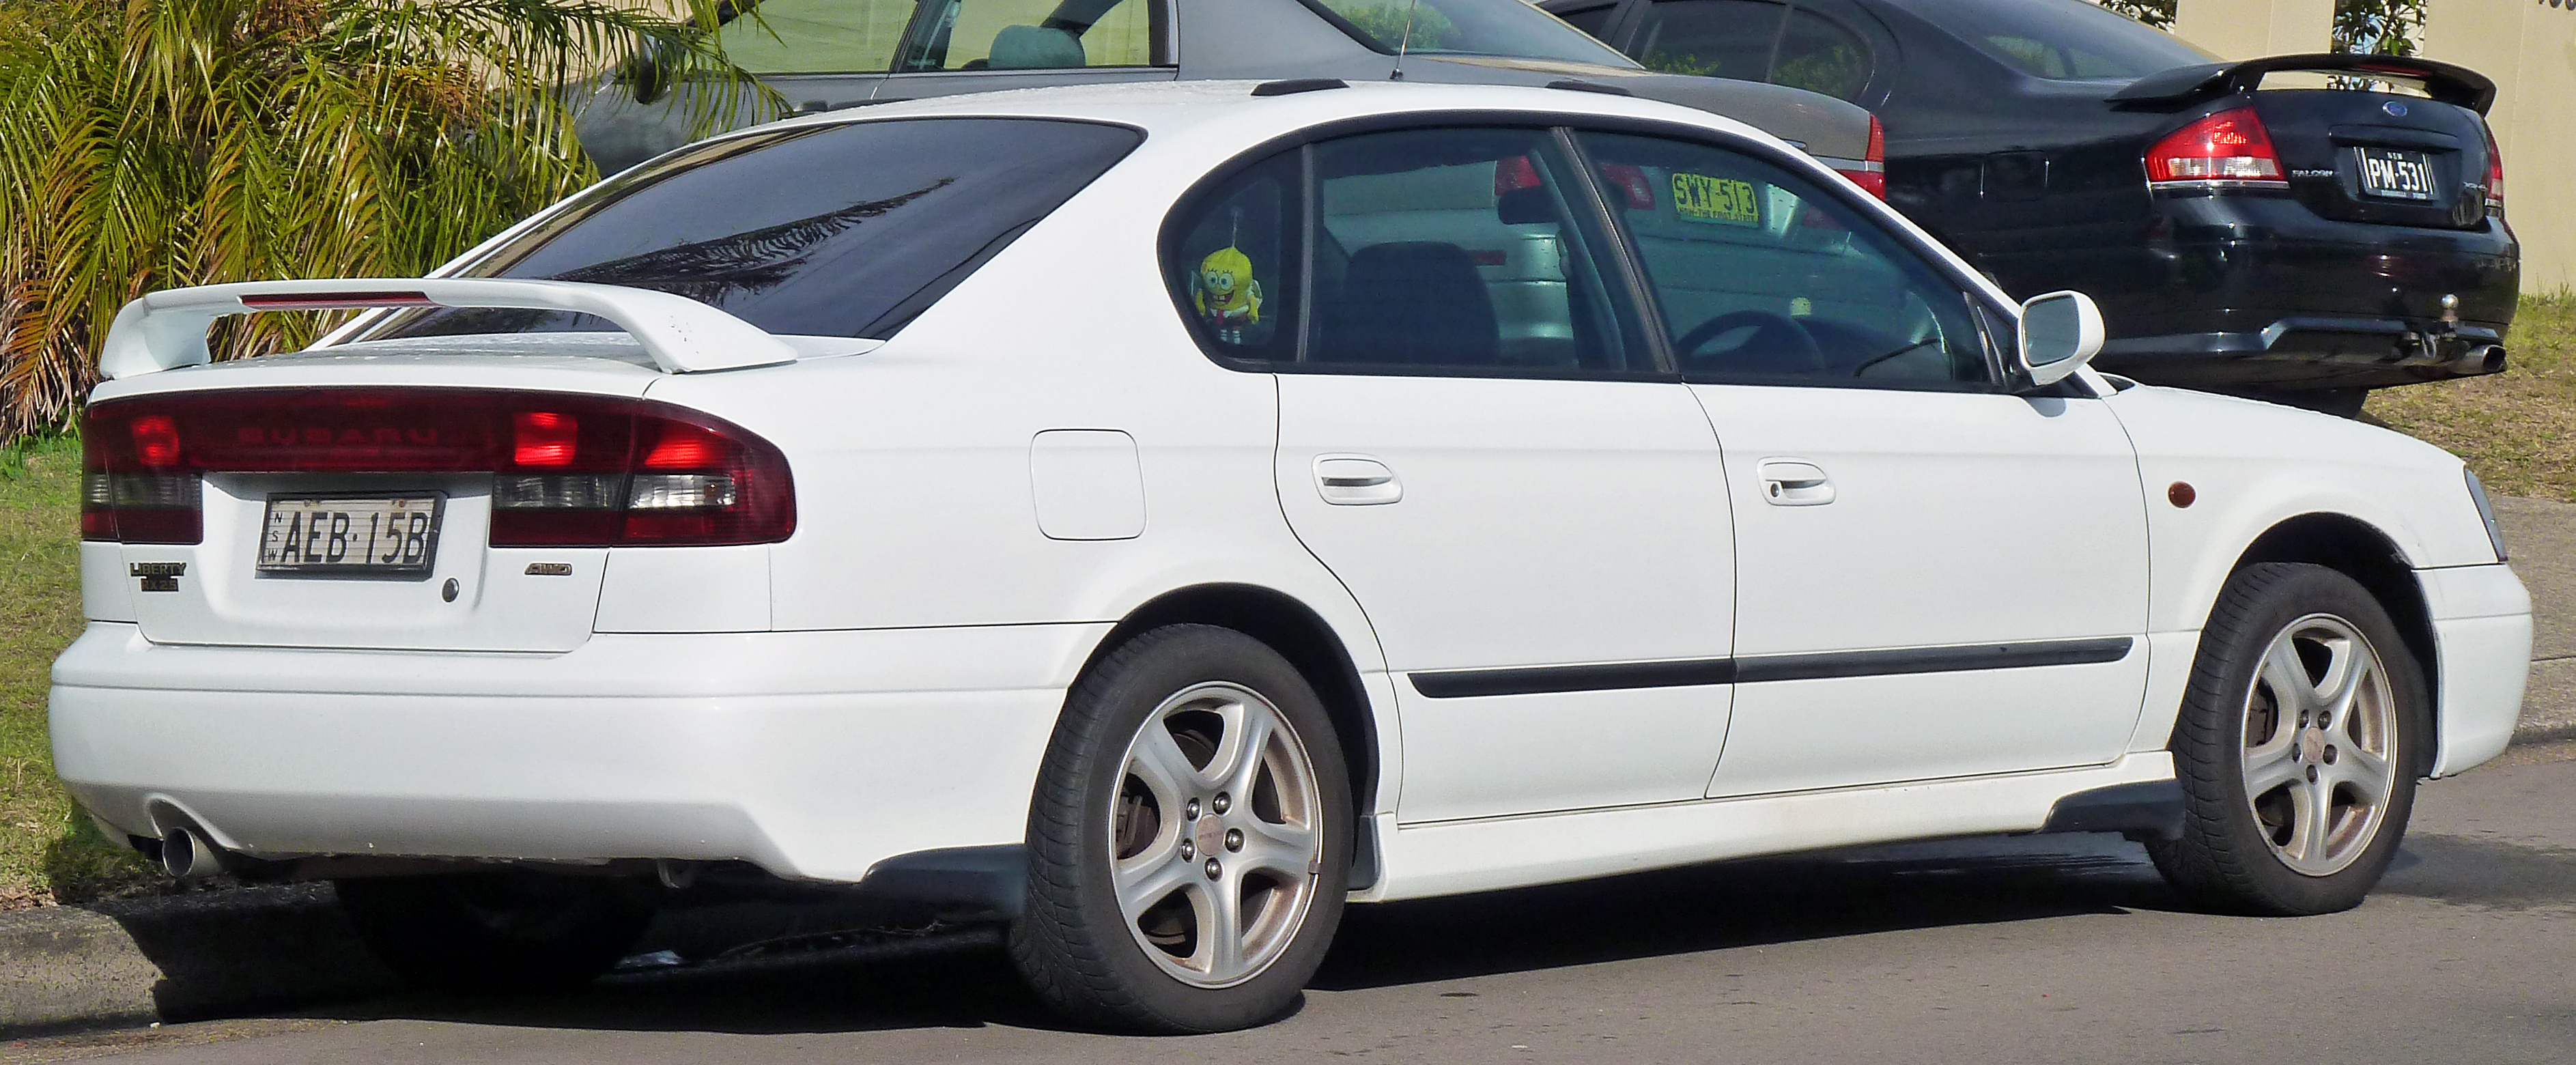 Subaru Liberty 1999 Review Amazing Pictures And Images Look At The Car